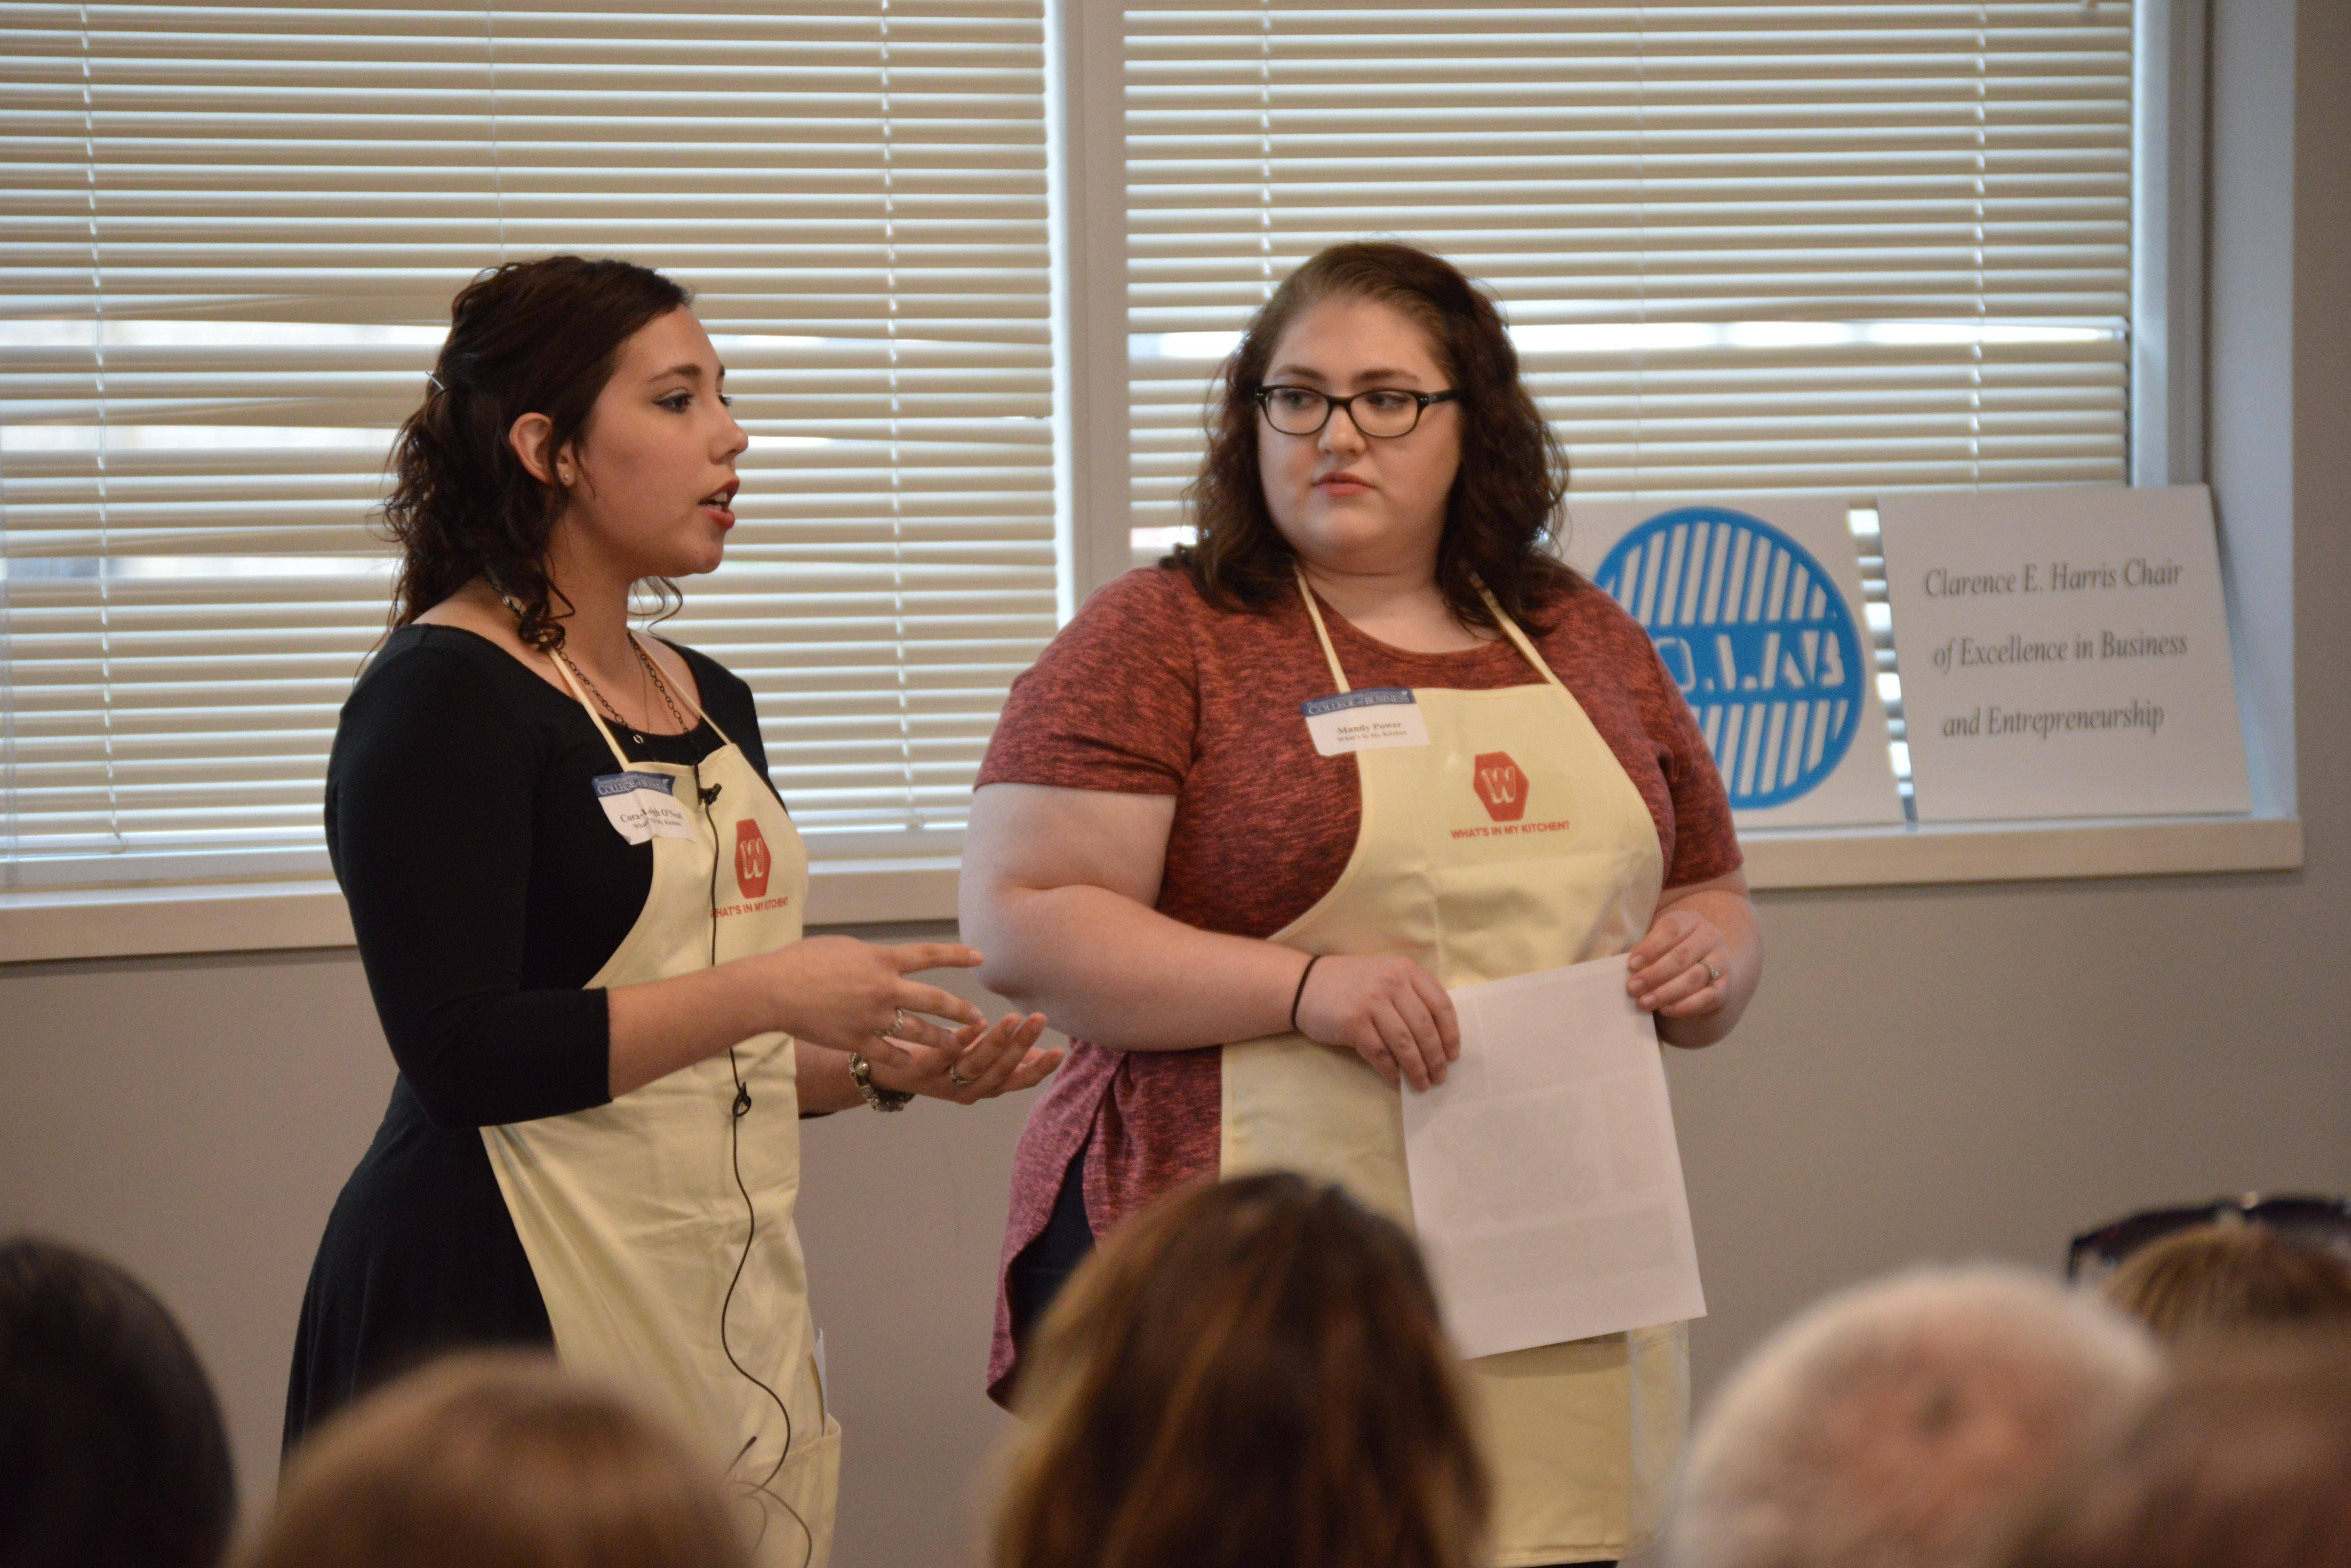 finding the next great business idea: local college students pitch